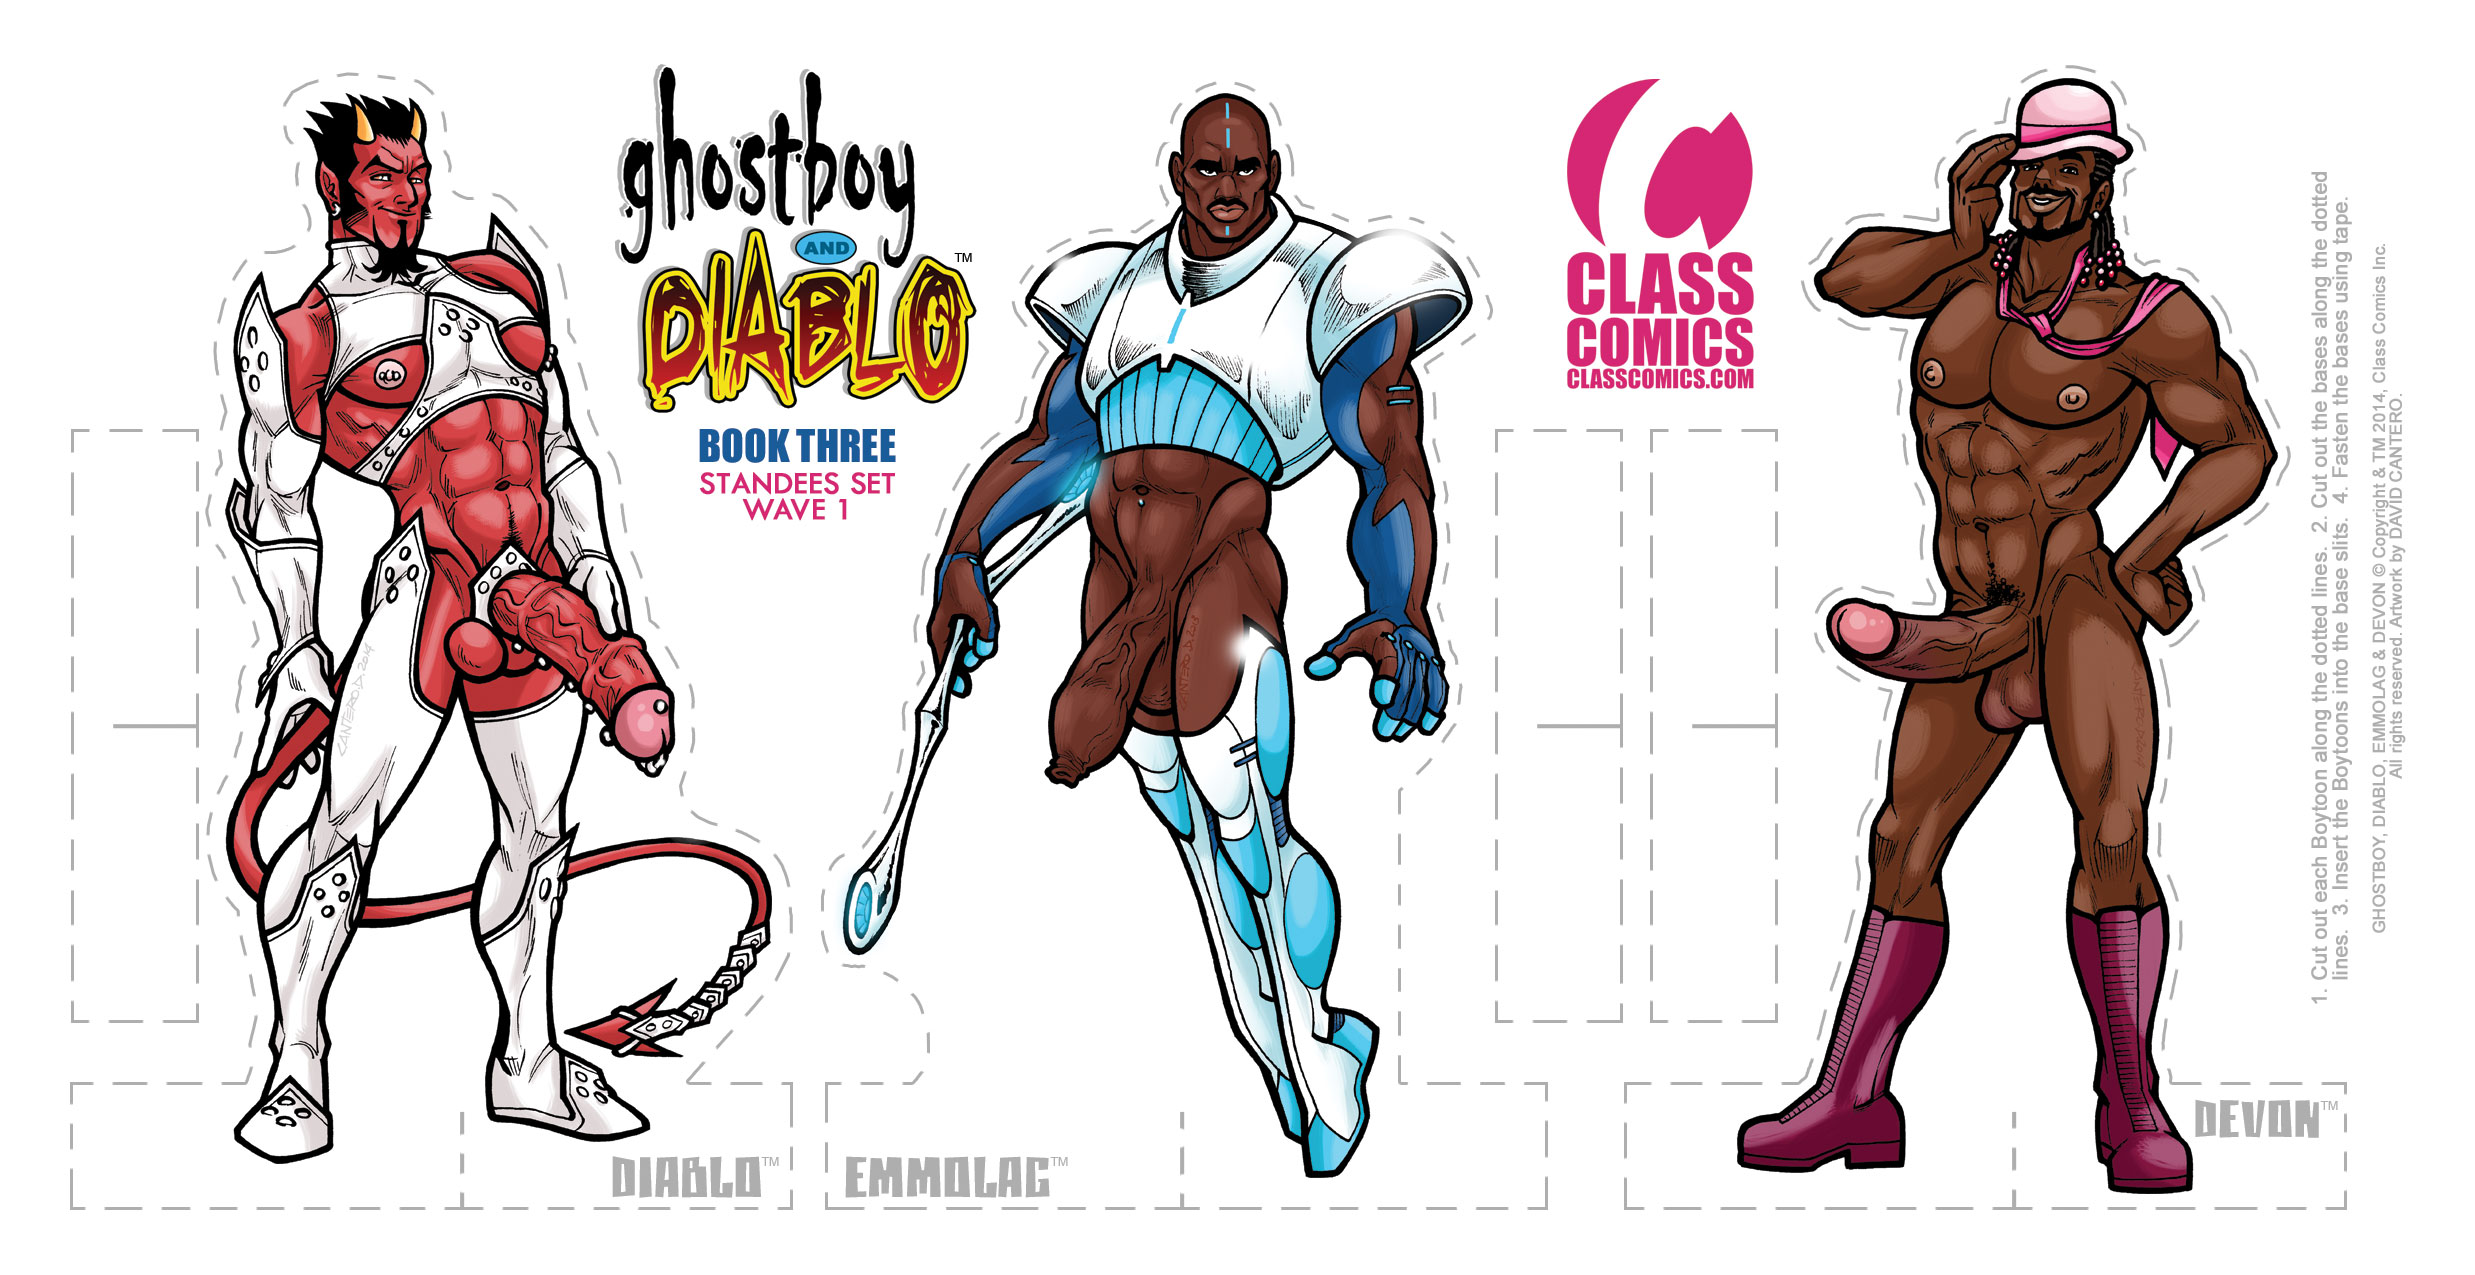 GHOSTBOY and DIABLO #3 – Paper Standees PACK card 1 of 2 – Art by David Cantero